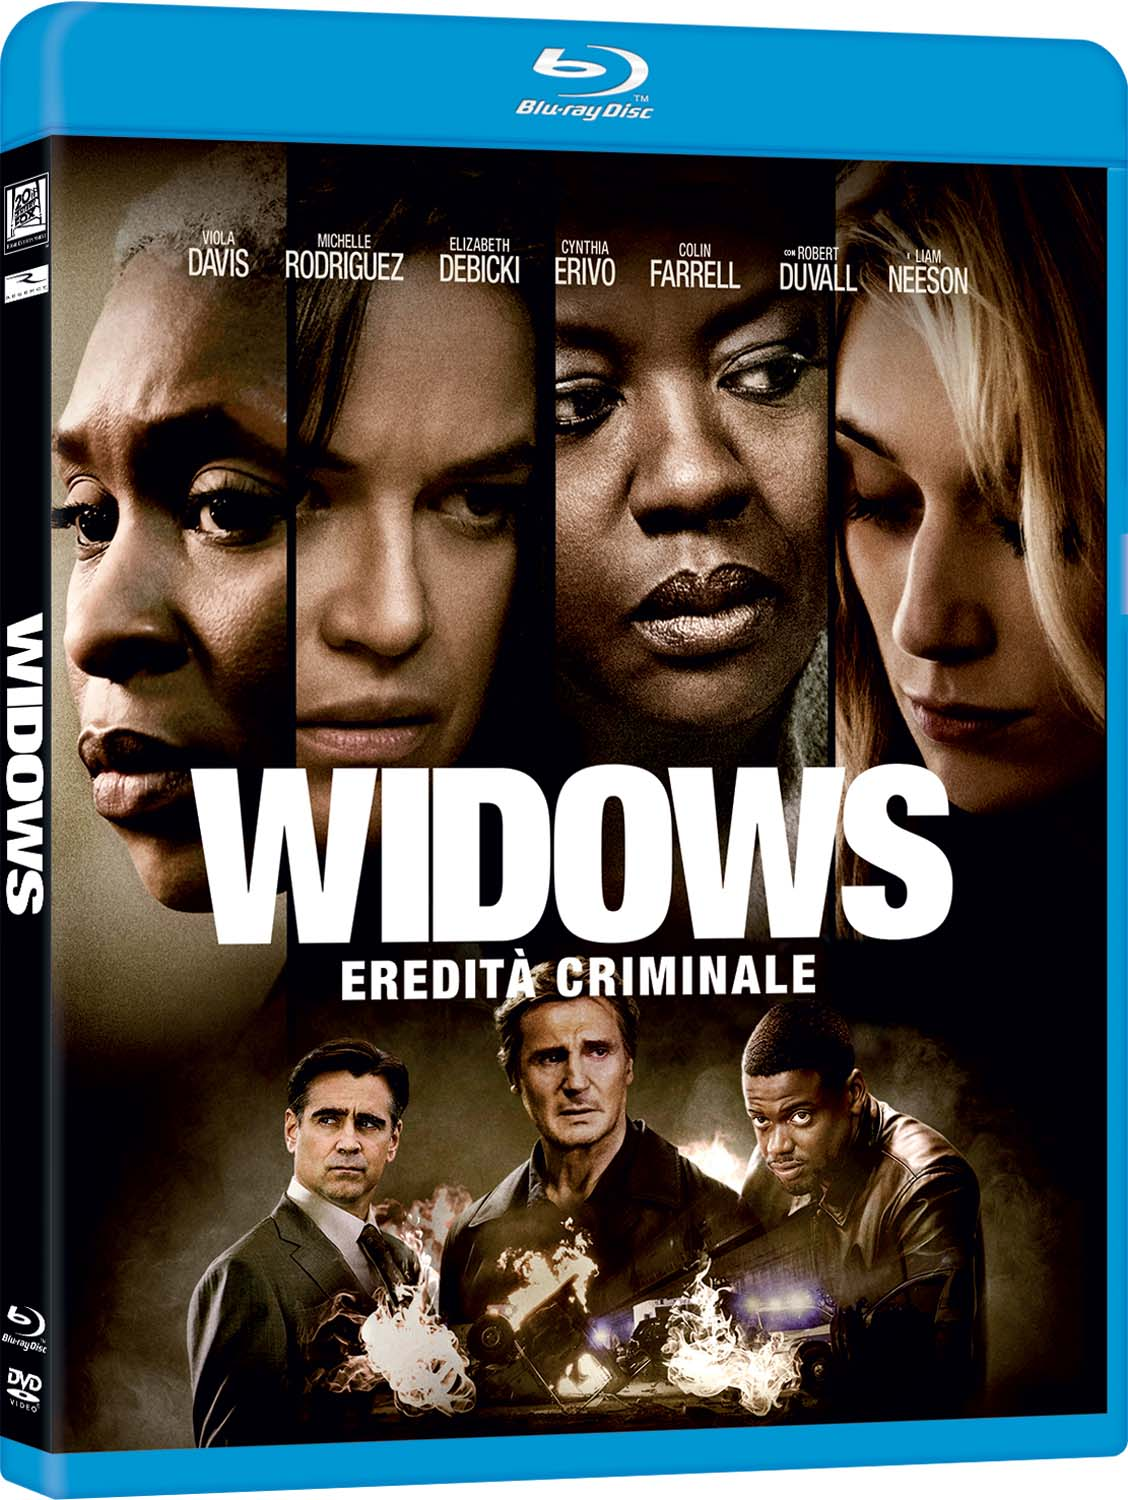 WIDOWS - EREDITA' CRIMINALE - BLU RAY